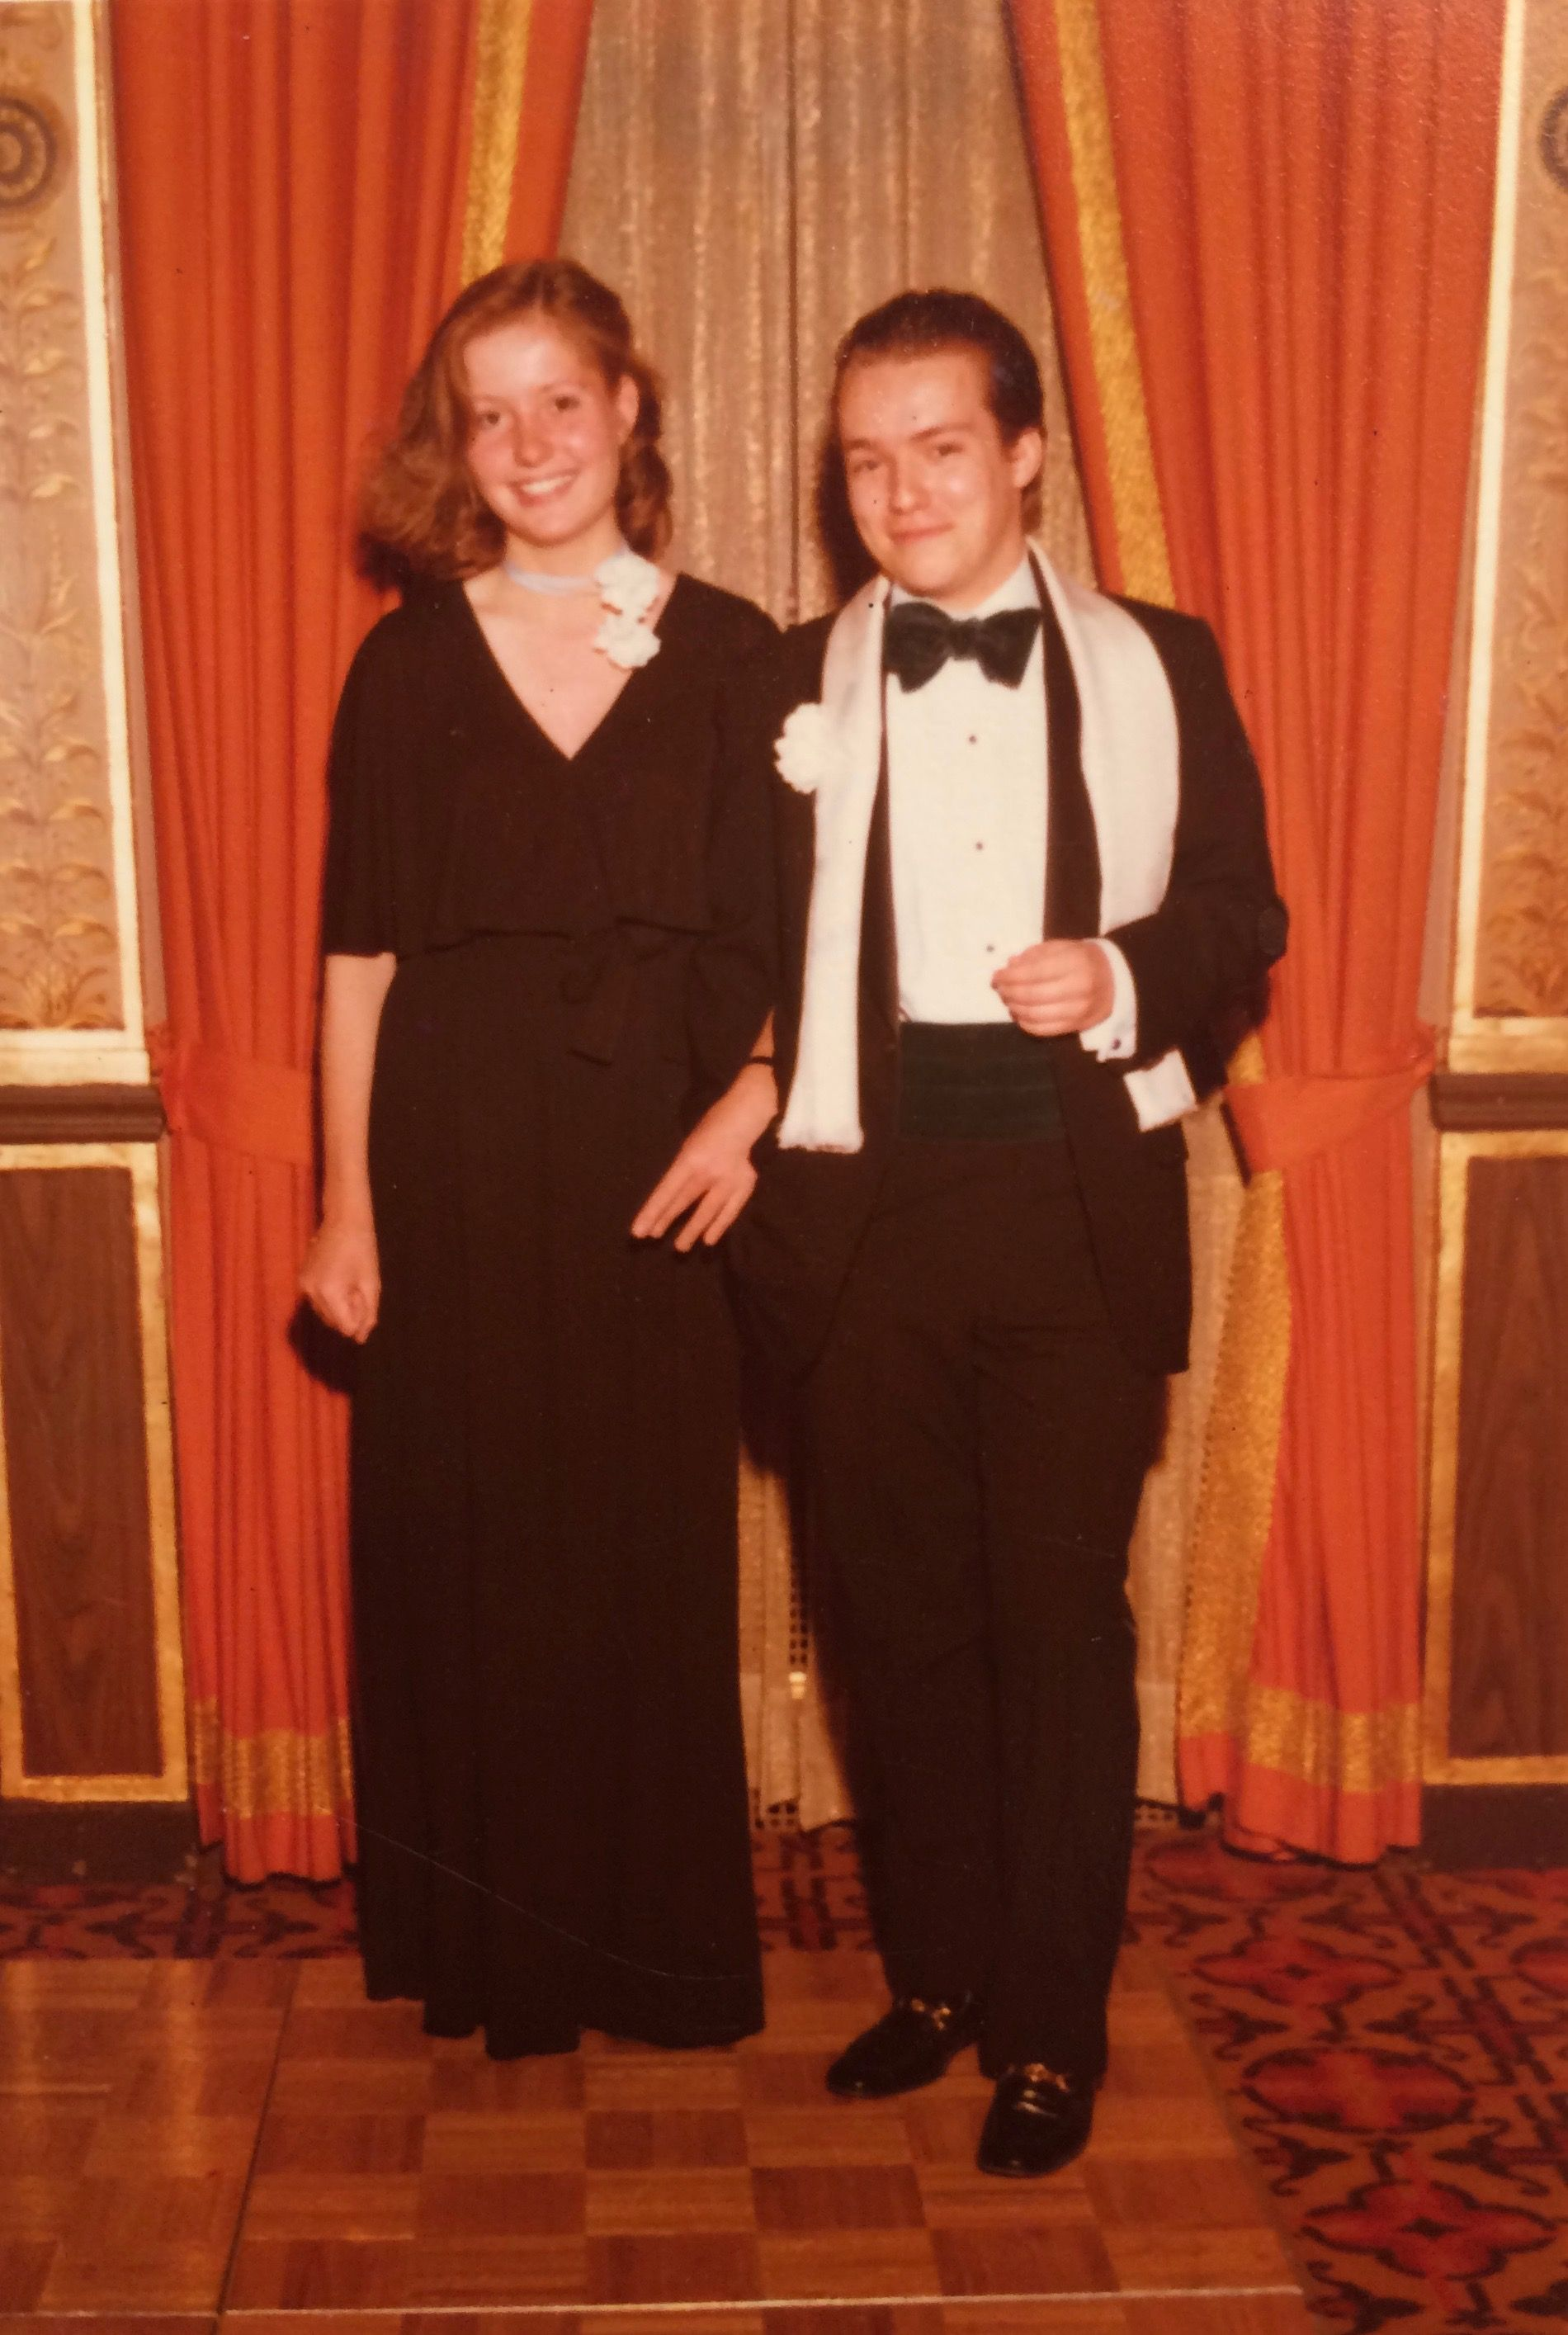 Moi, Prom night, New York 1978. Butch, as always